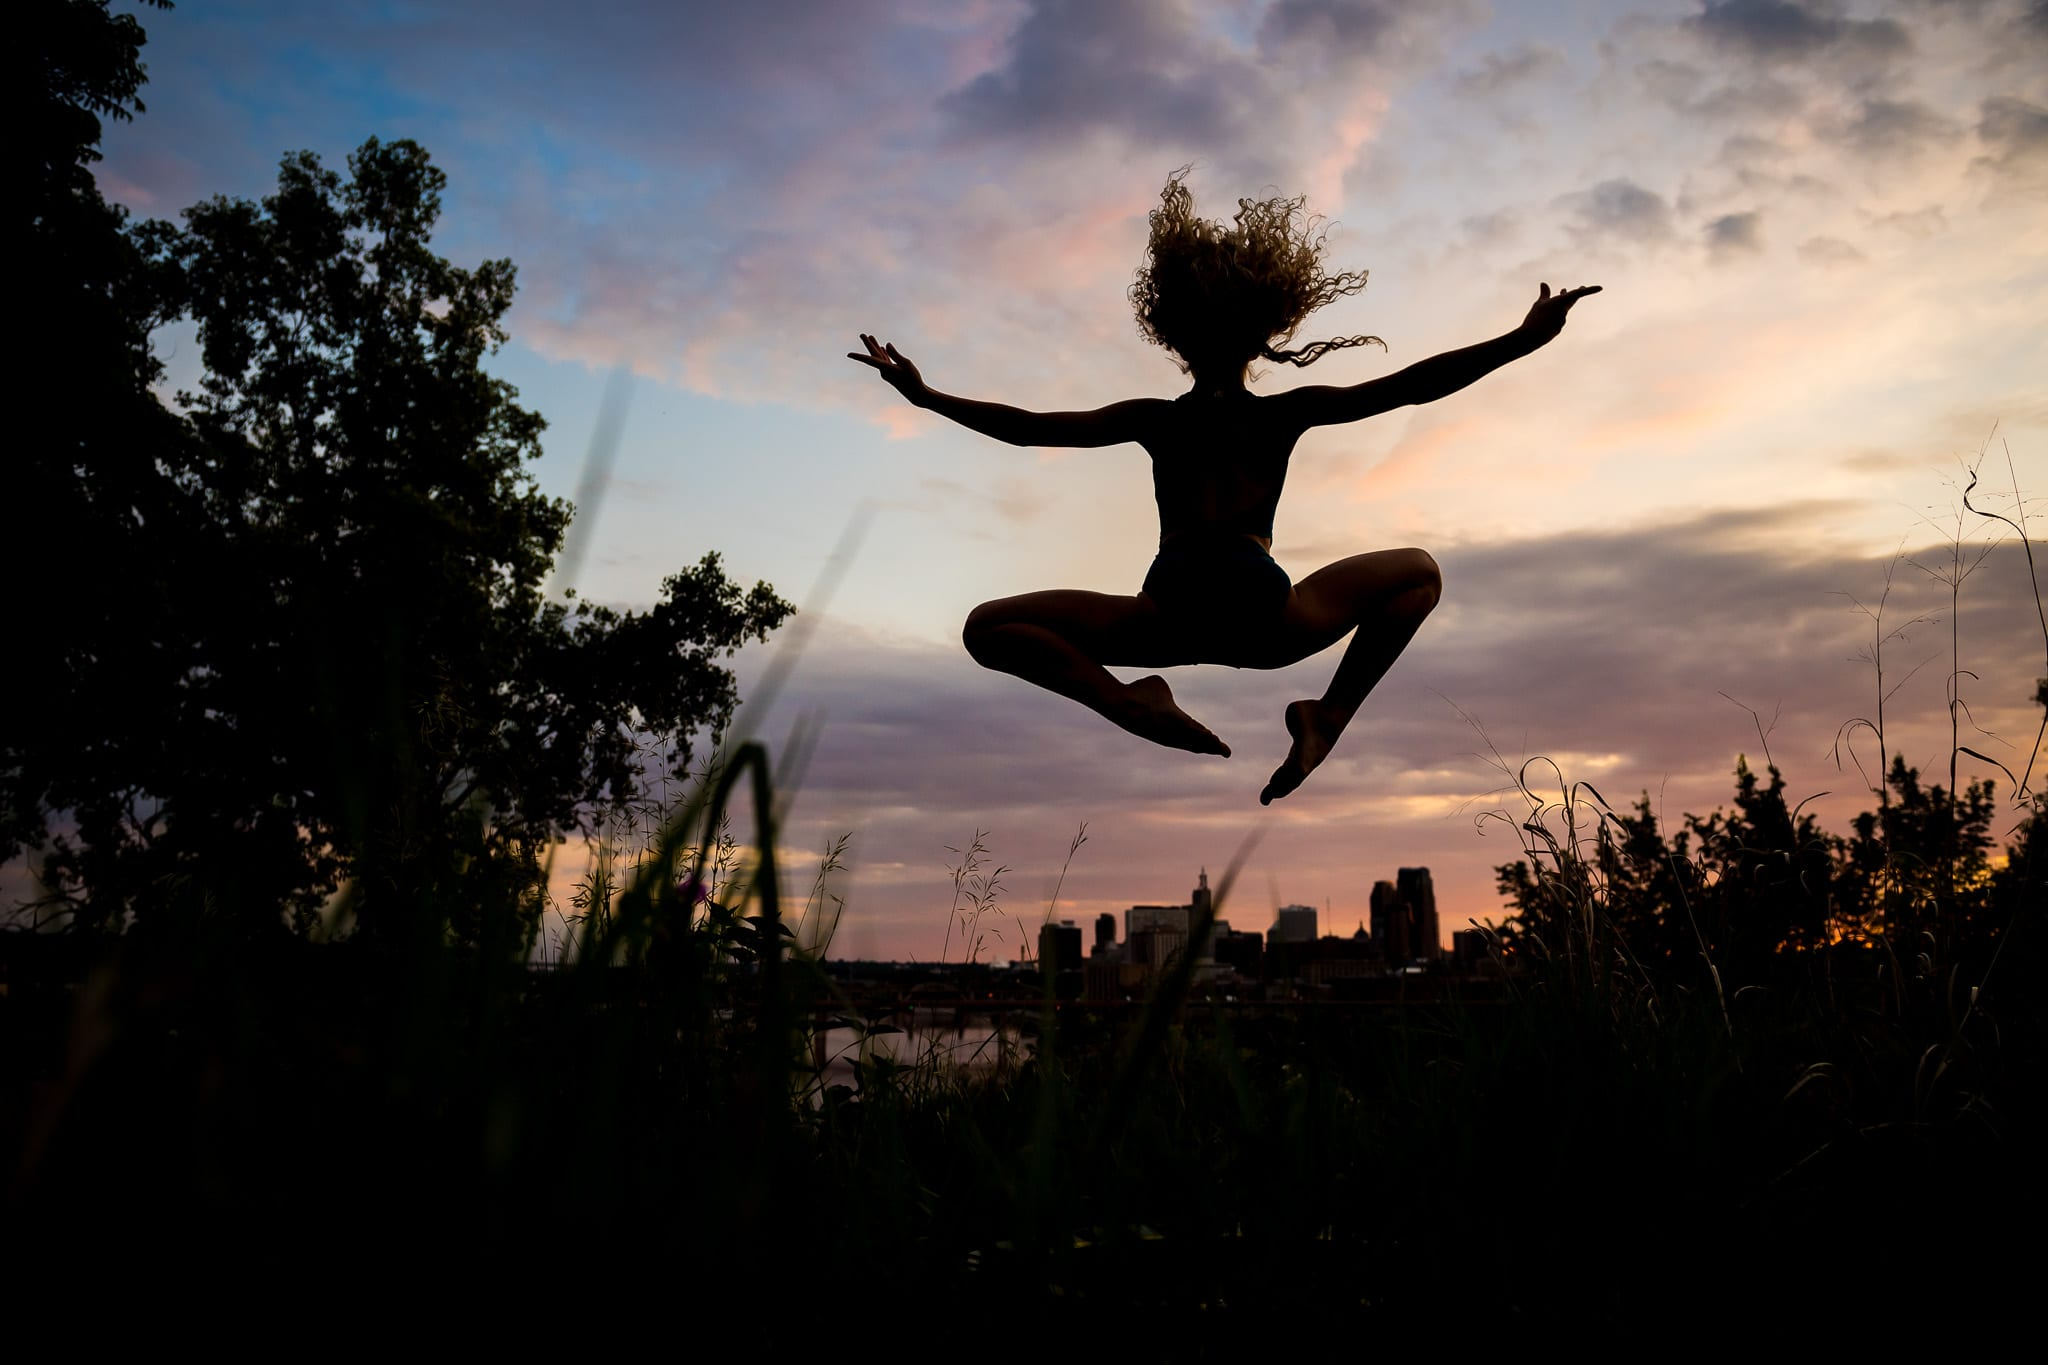 A young contemporary dancer leaping in silhouette at Indian Mounds Park in St. Paul, MN during sunset